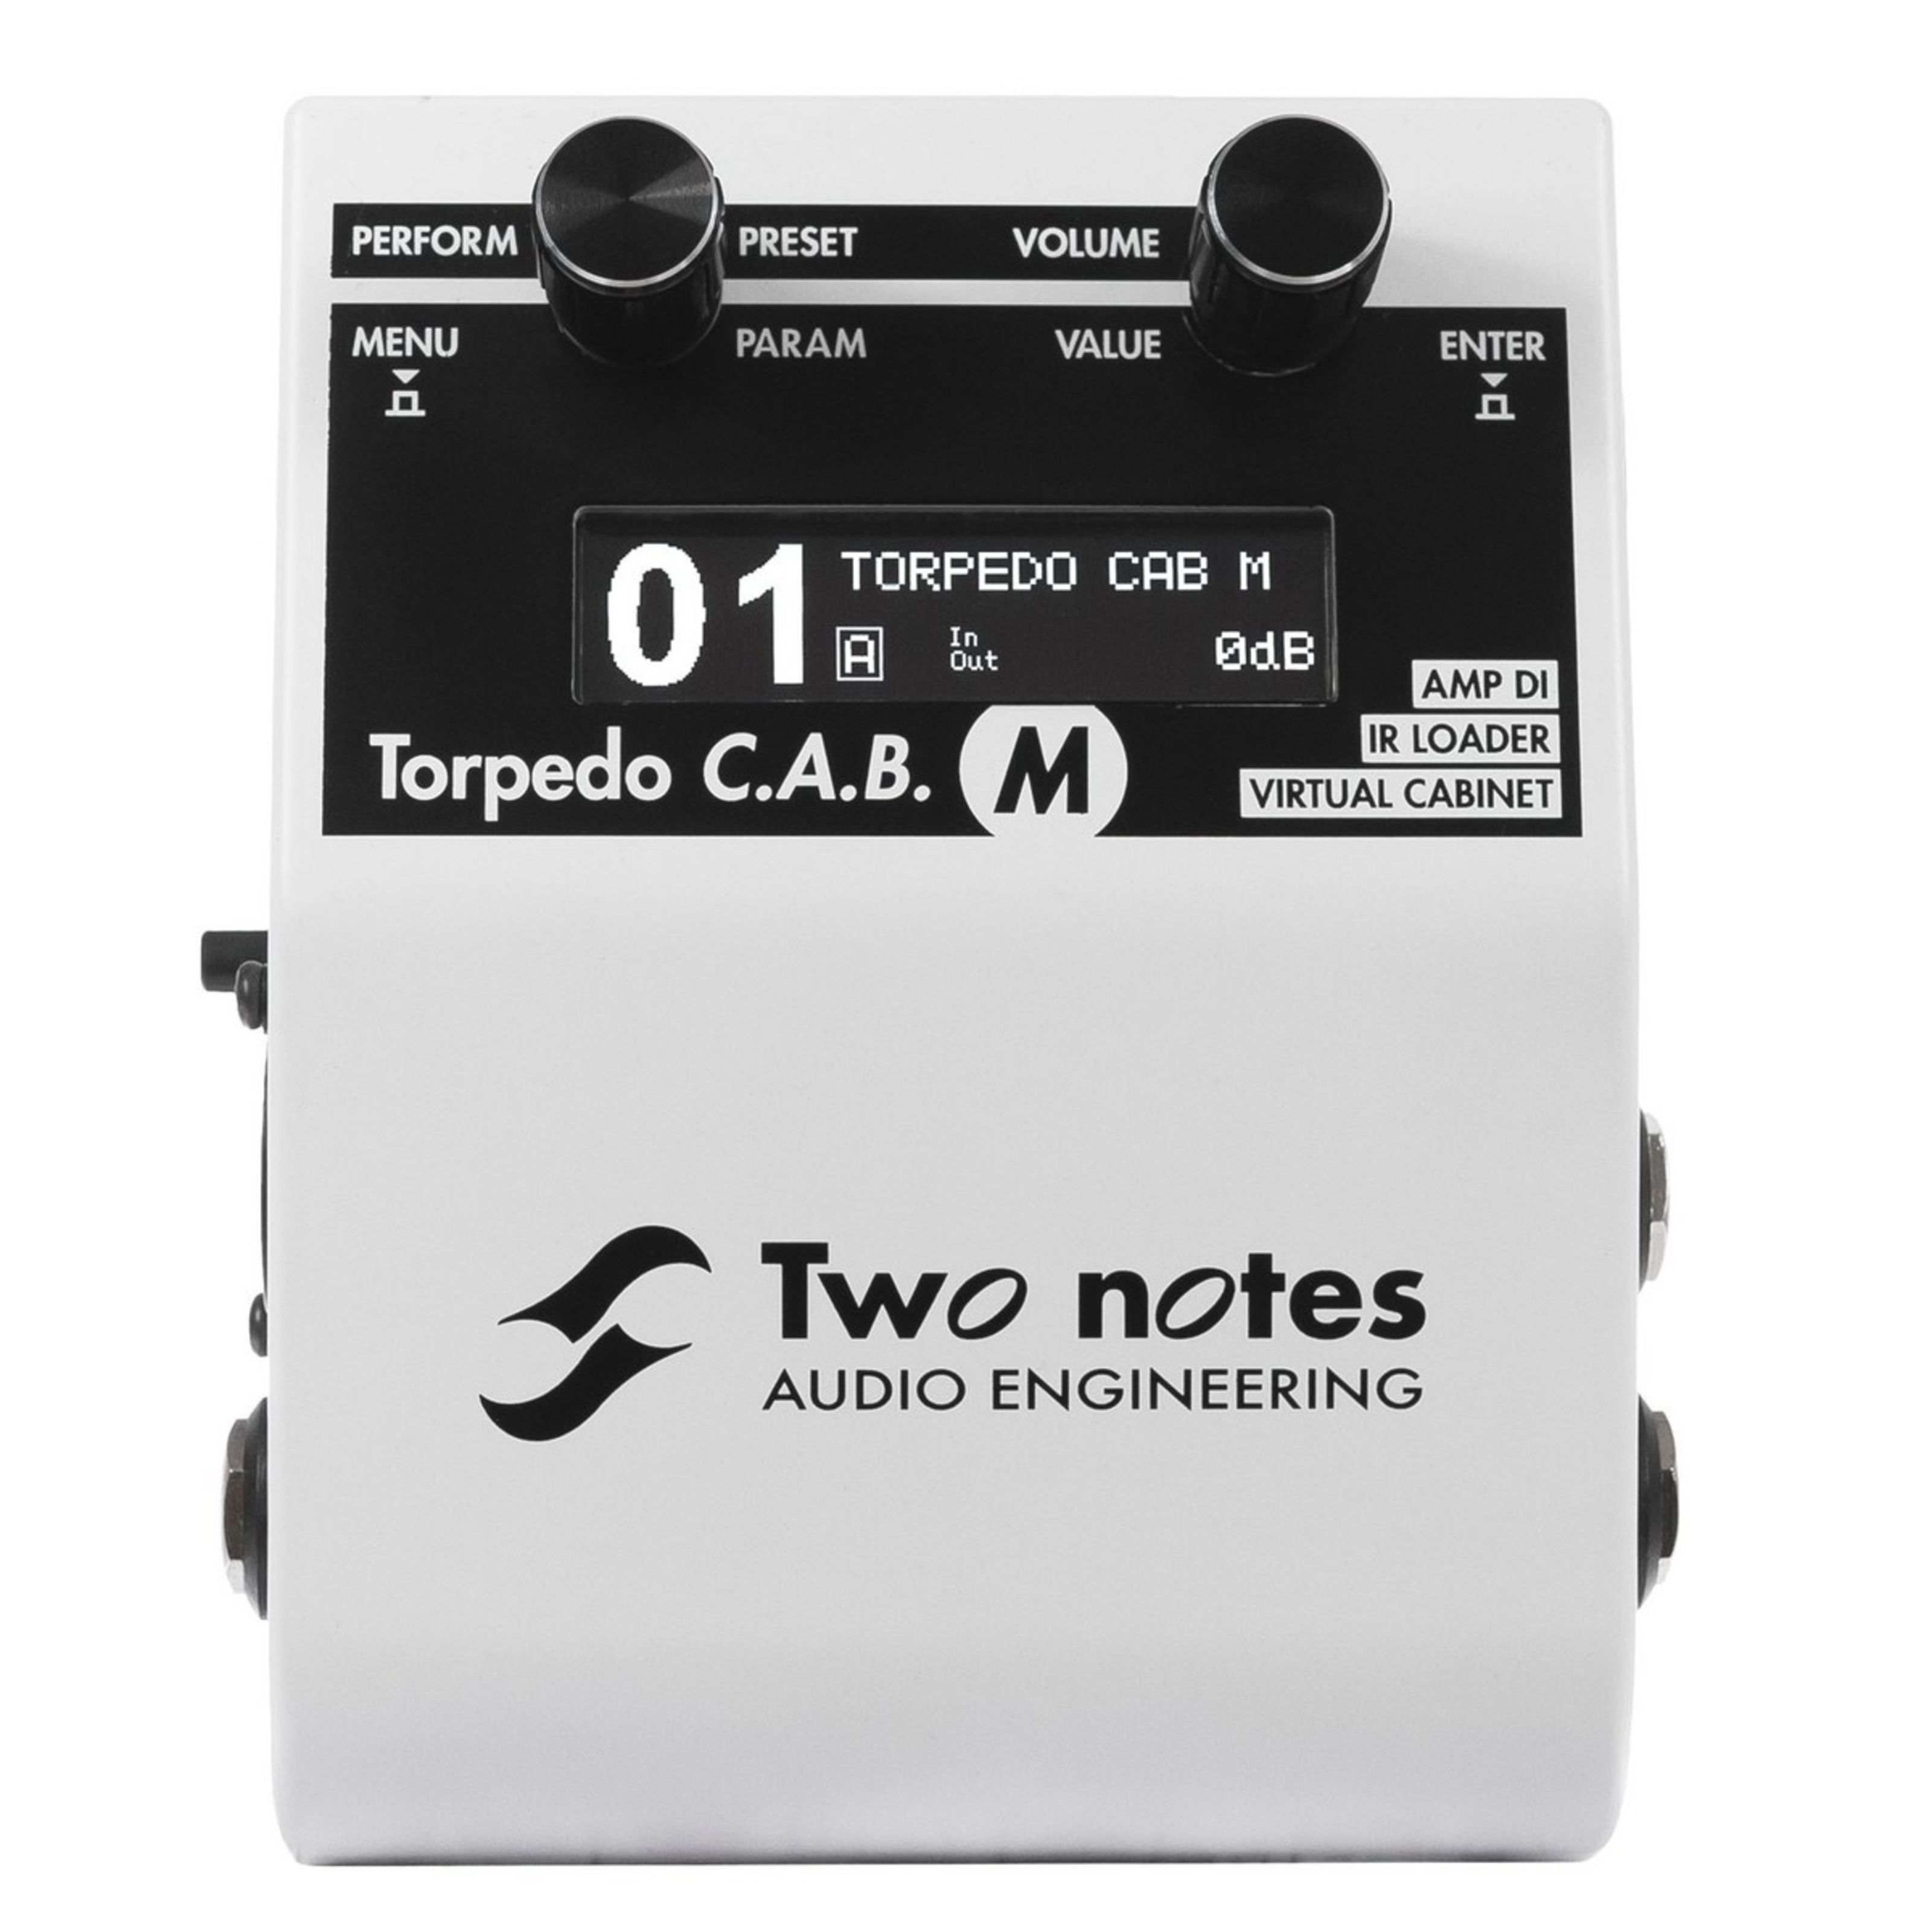 Two Notes - Torpedo C.A.B. M